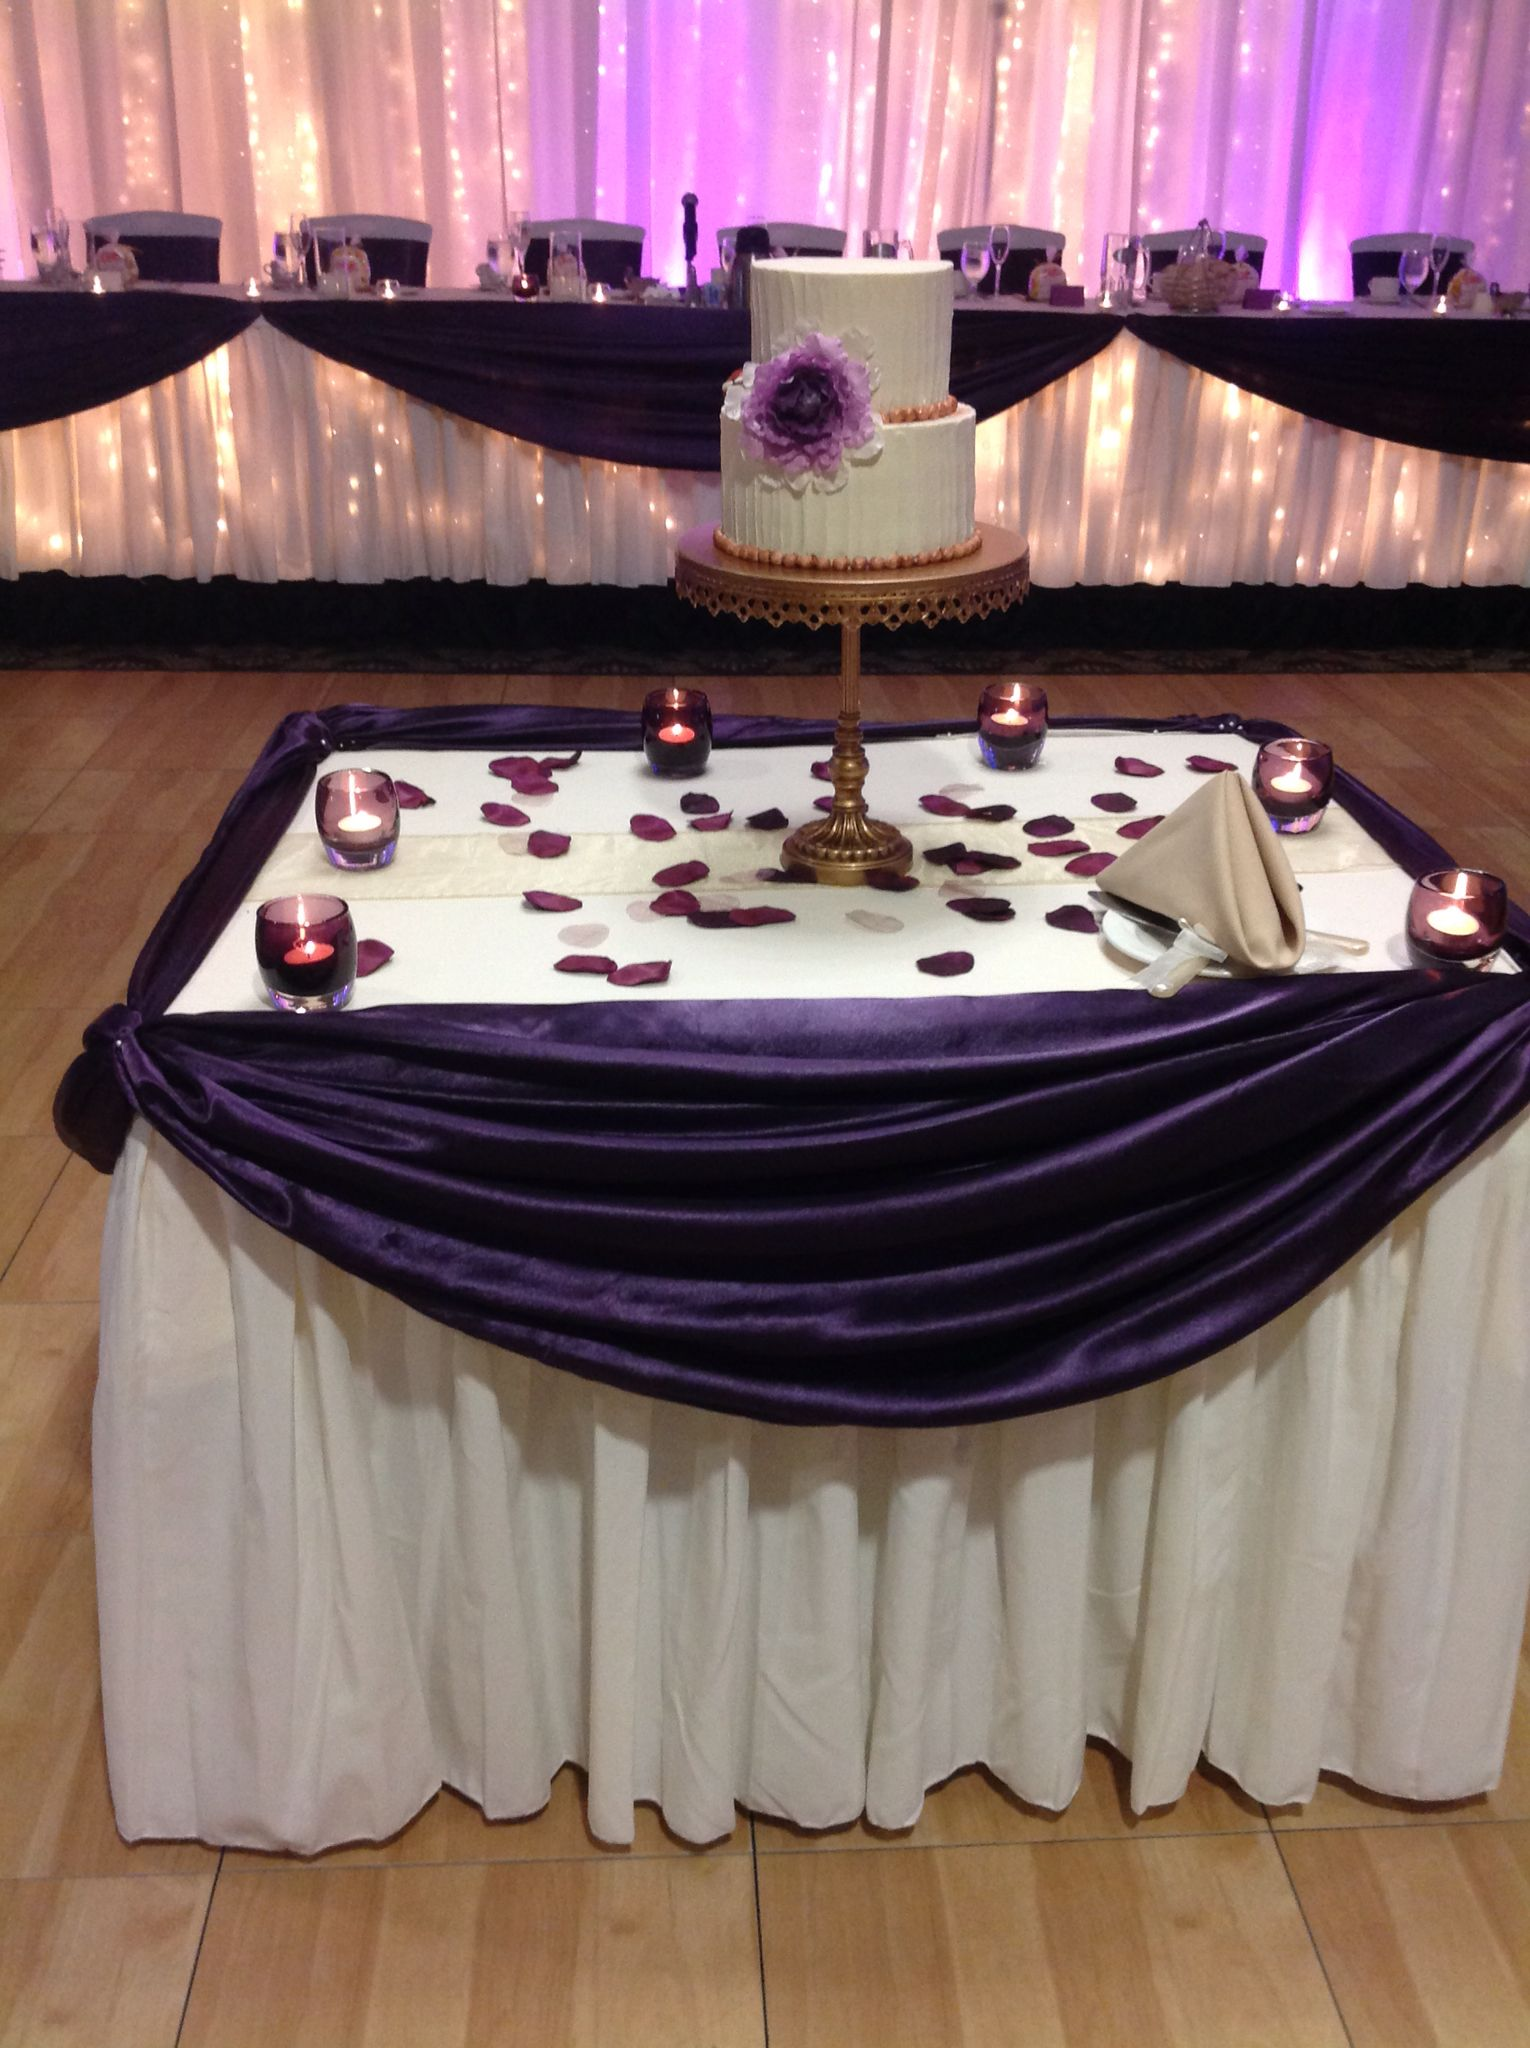 Canadian Honker Events at Apace, Rochester MN #weddings #decor #caketable